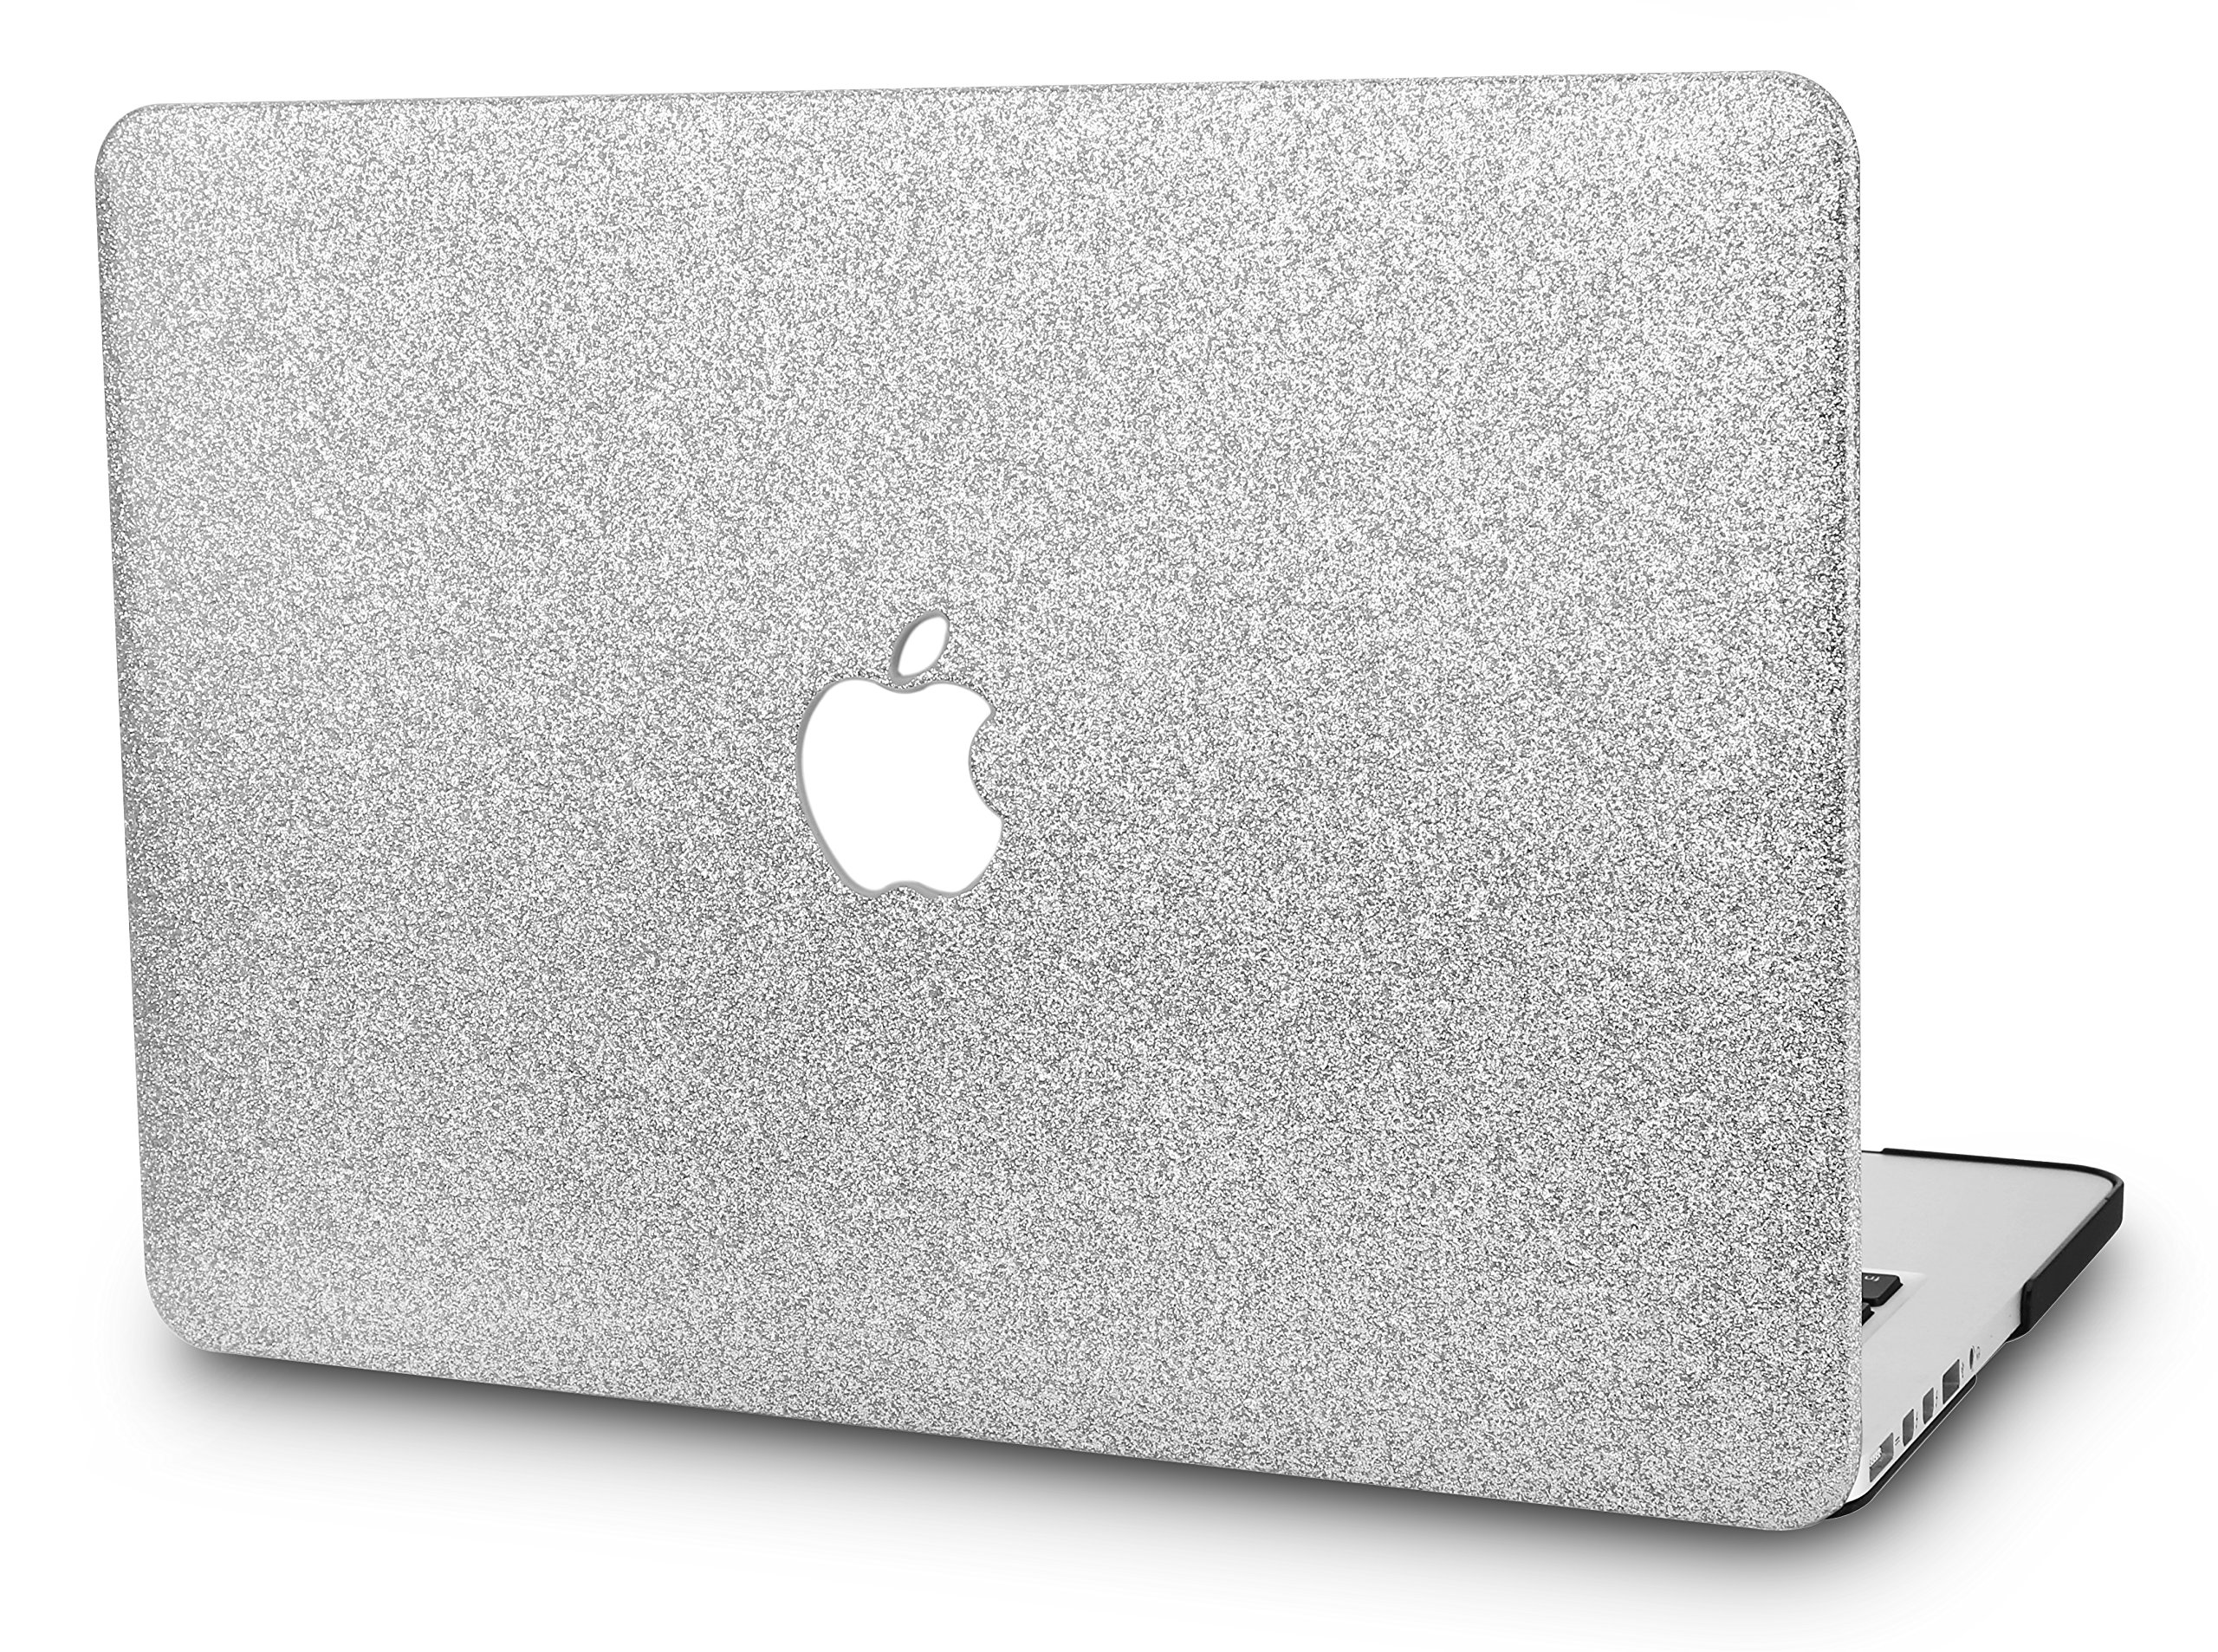 "KECC Laptop Case for MacBook Air 13"" Plastic Case Hard Shell Cover A1466/A1369 (Silver Sparkling)"